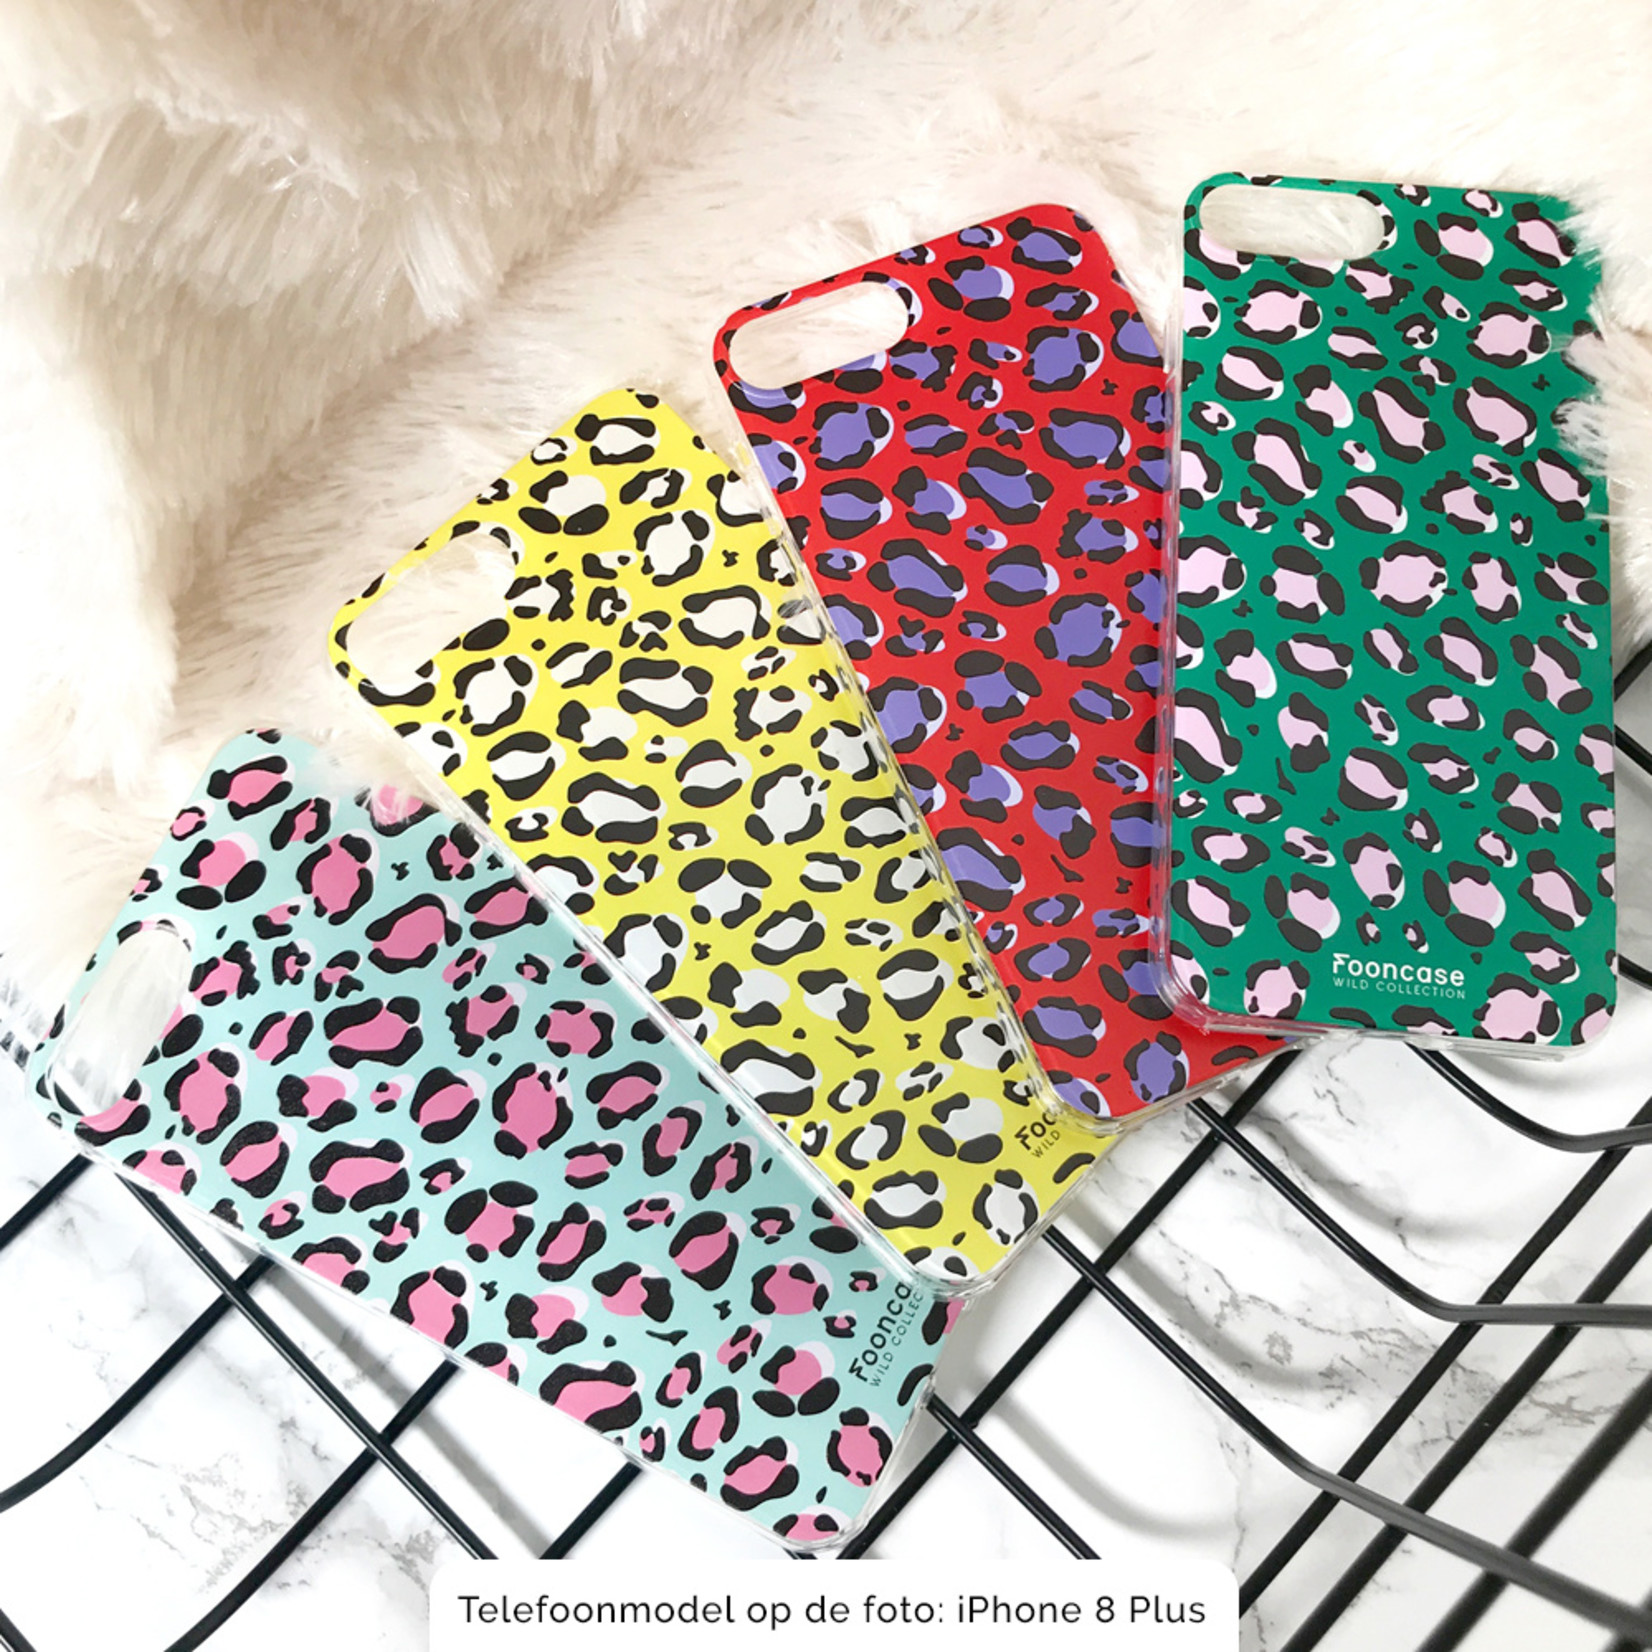 FOONCASE iPhone 11 hoesje TPU Soft Case - Back Cover - WILD COLLECTION / Luipaard / Leopard print / Blauw